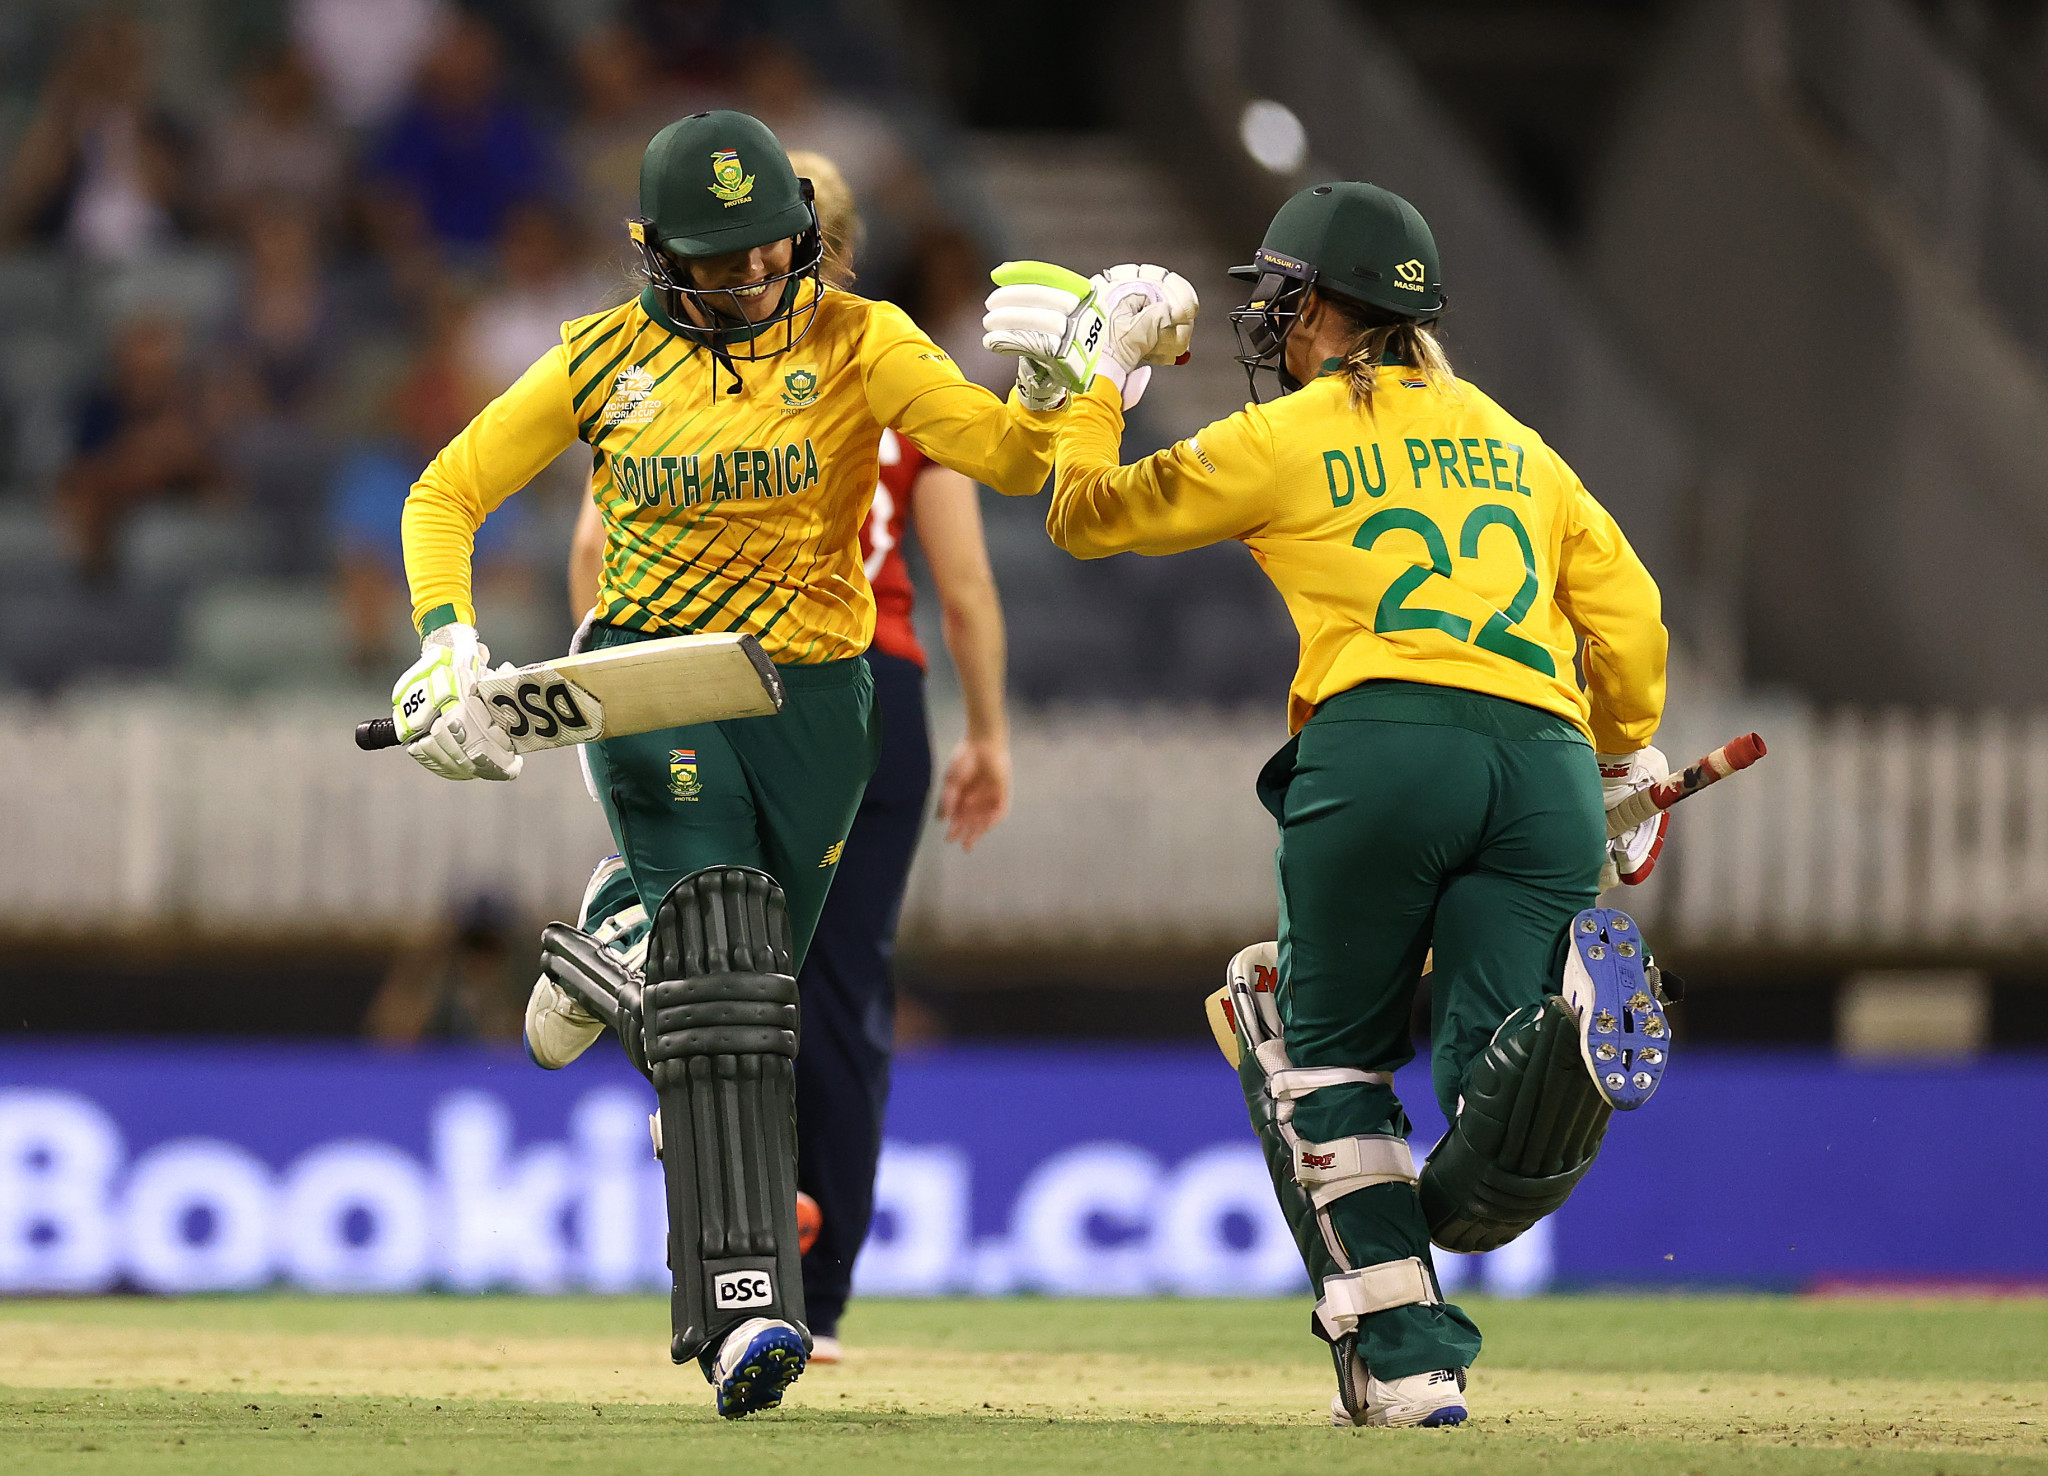 South Africa surprised England at the Women's T20 World Cup in Perth ©Getty Images